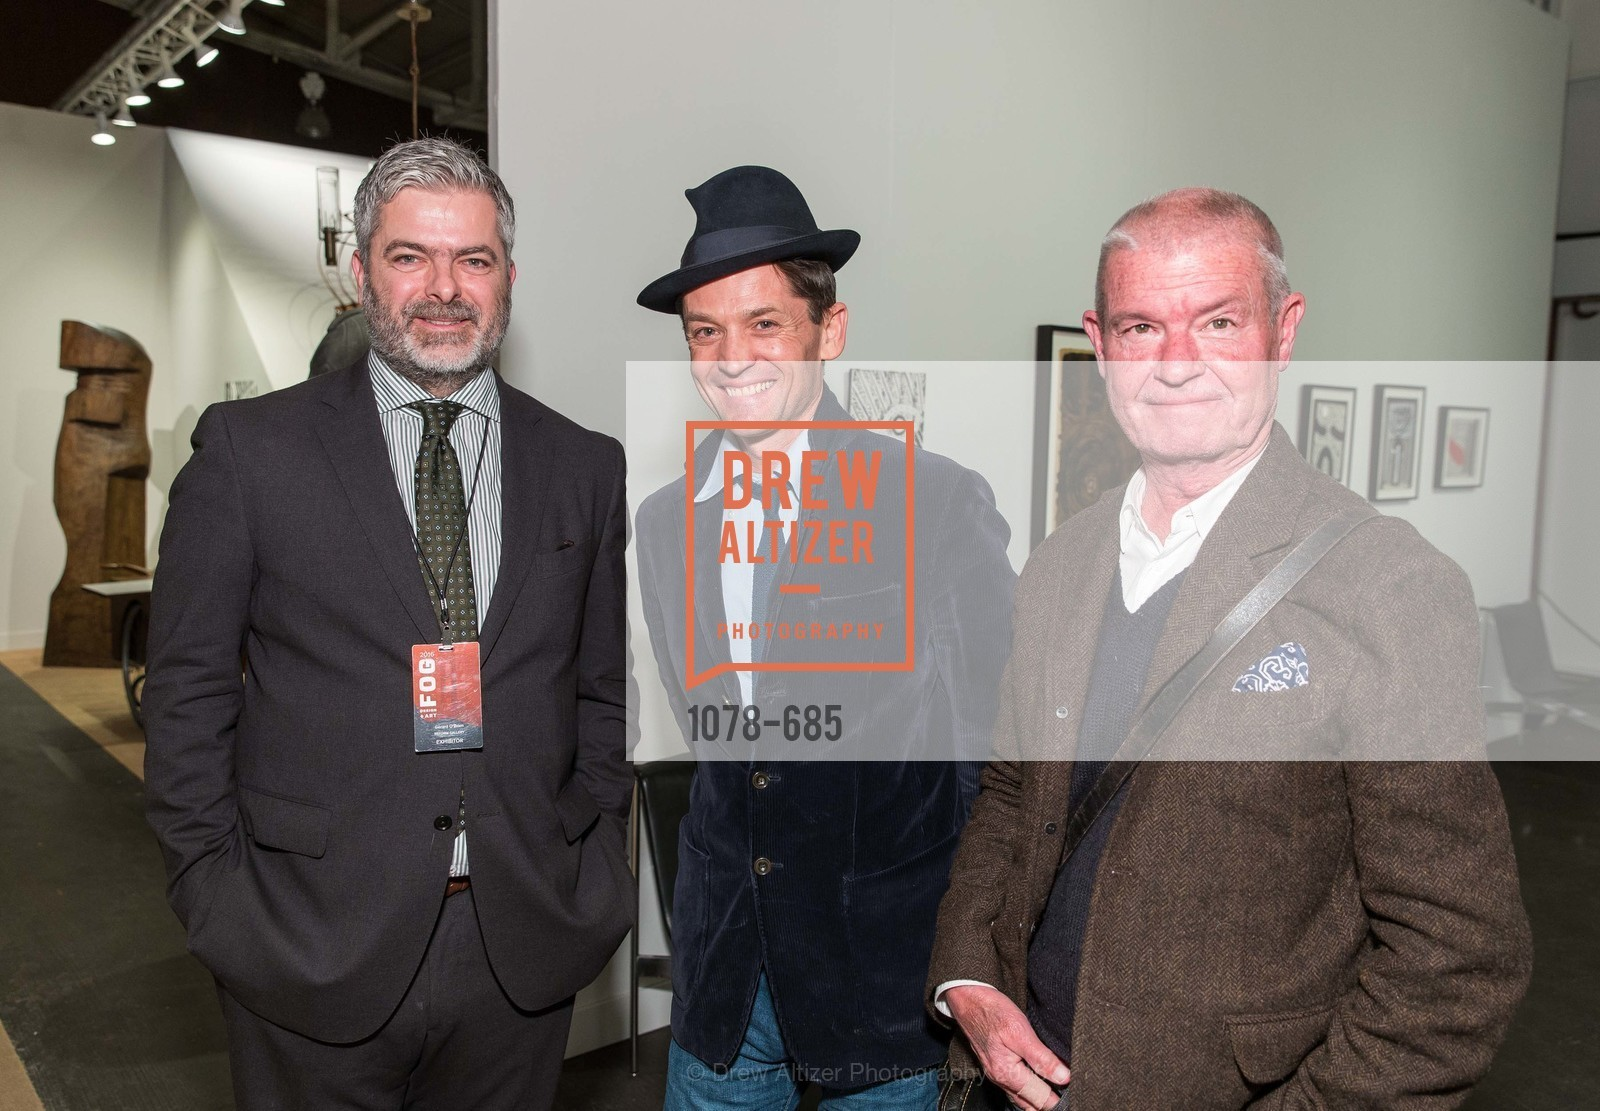 Gerard O'Brien, Daniel de la Falaise, Fletcher, FOG Design+Art Preview Gala, Fort Mason Center Festival Pavilion, January 13th, 2016,Drew Altizer, Drew Altizer Photography, full-service agency, private events, San Francisco photographer, photographer california